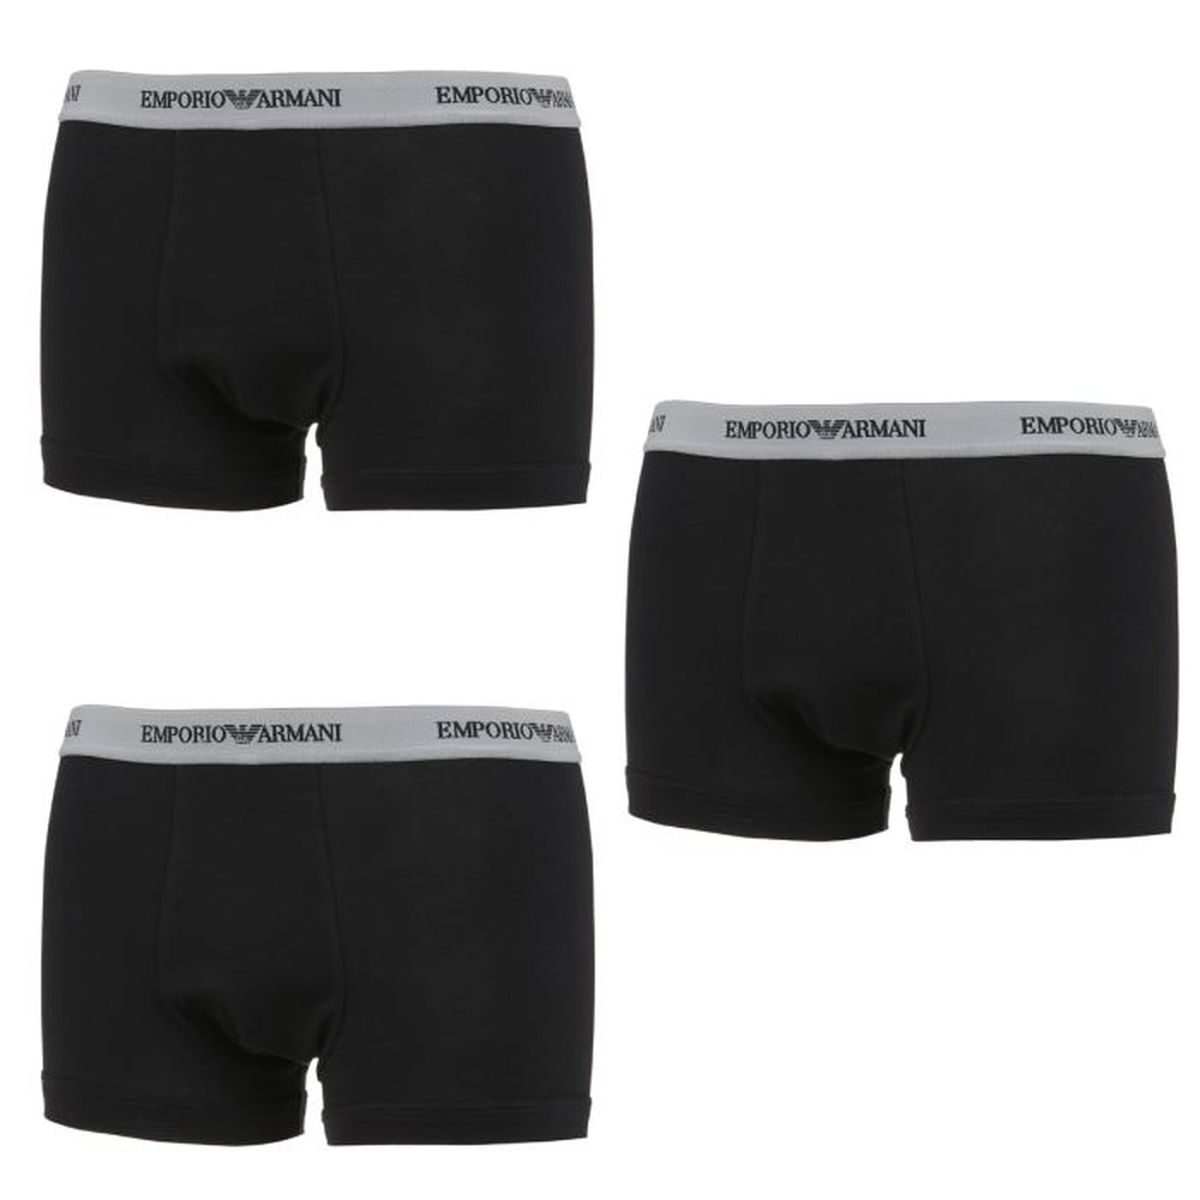 EMPORIO ARMANI 3 Packs Boxers Trunk Homme